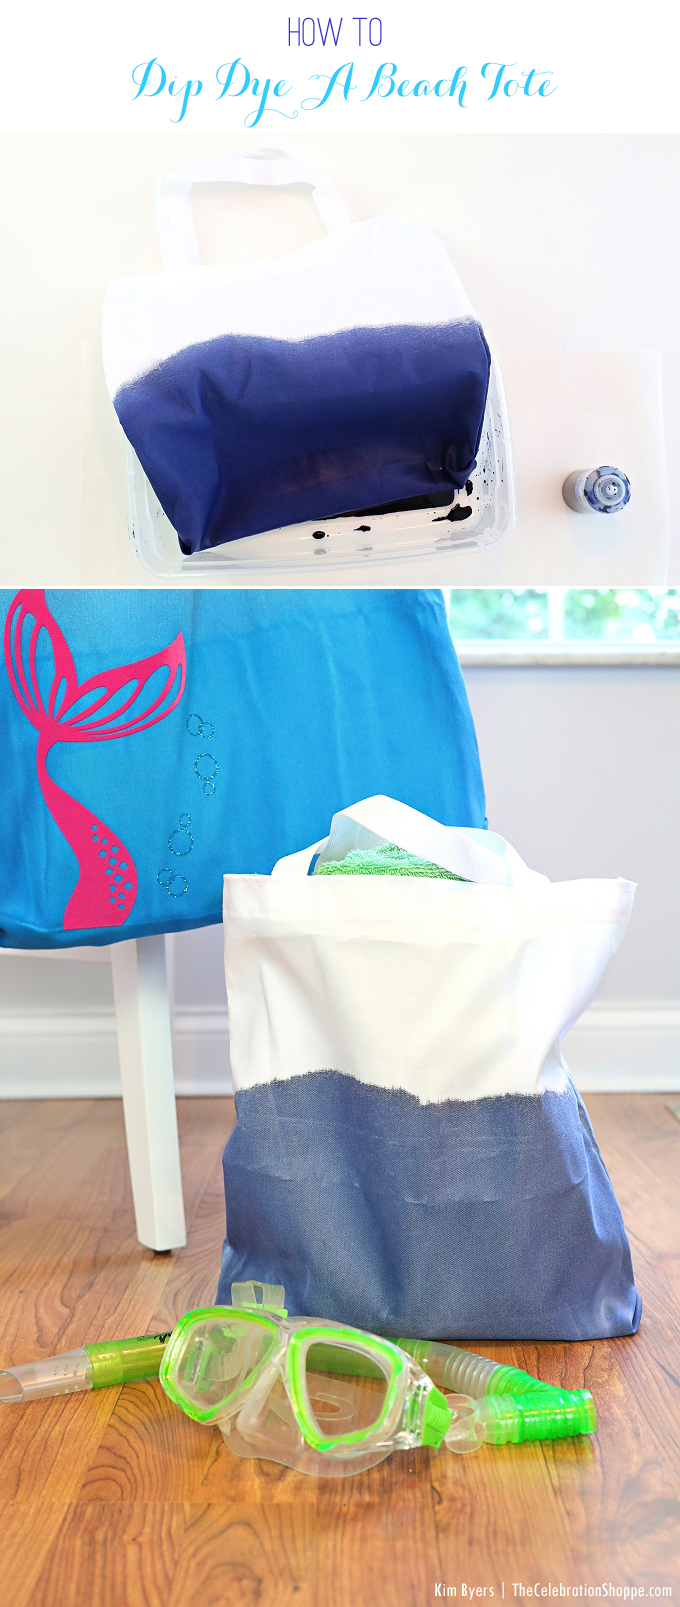 3-How-To-Dip-Dye-A-Tote-Kim-Byers